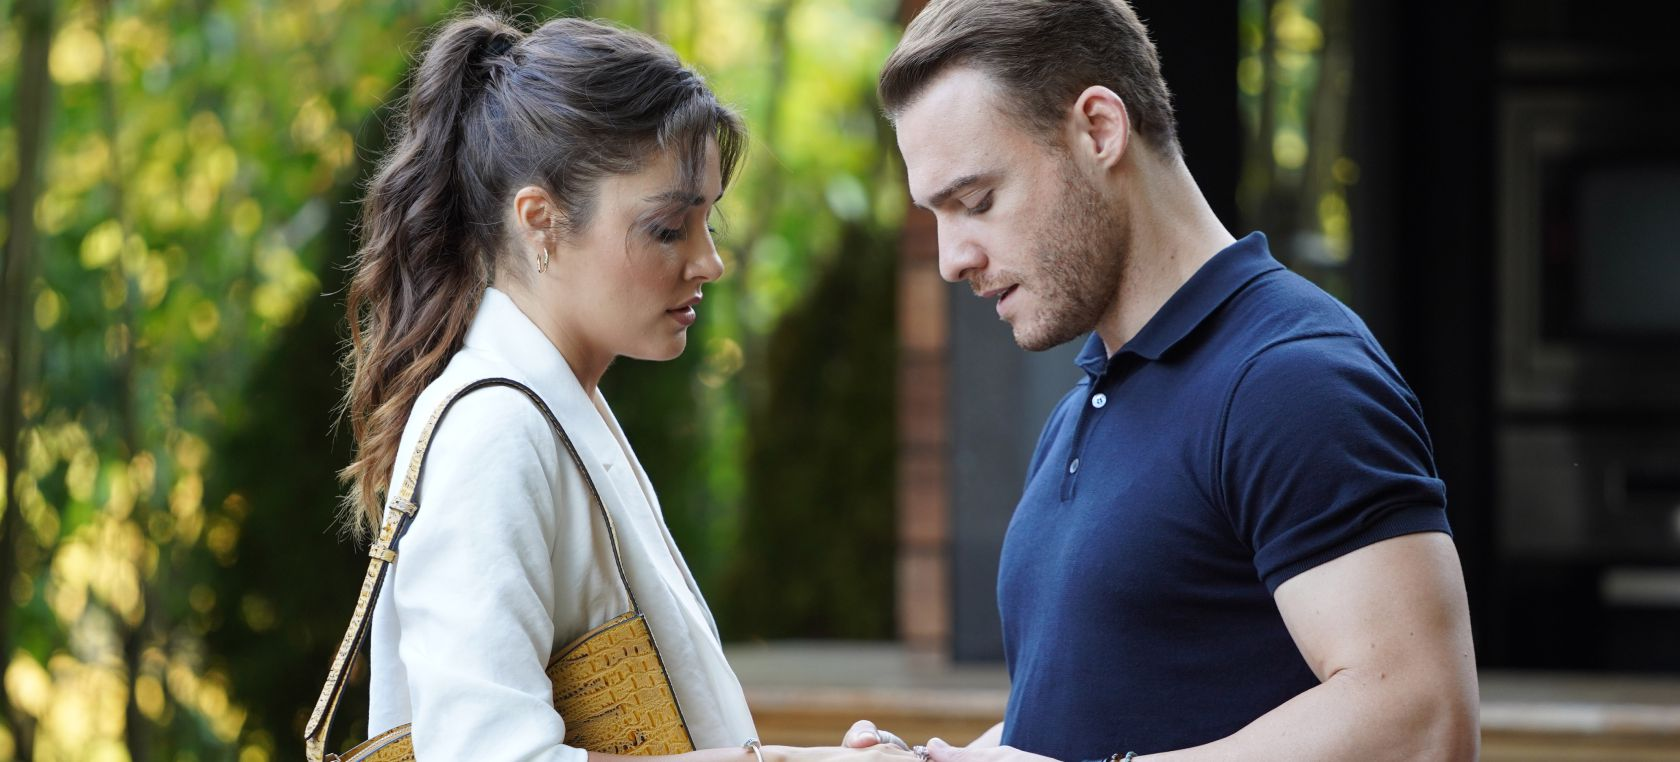 Kerem Bürsin y Hande Erçel ('Love is in the air') prometen informar si hay avances en su relación